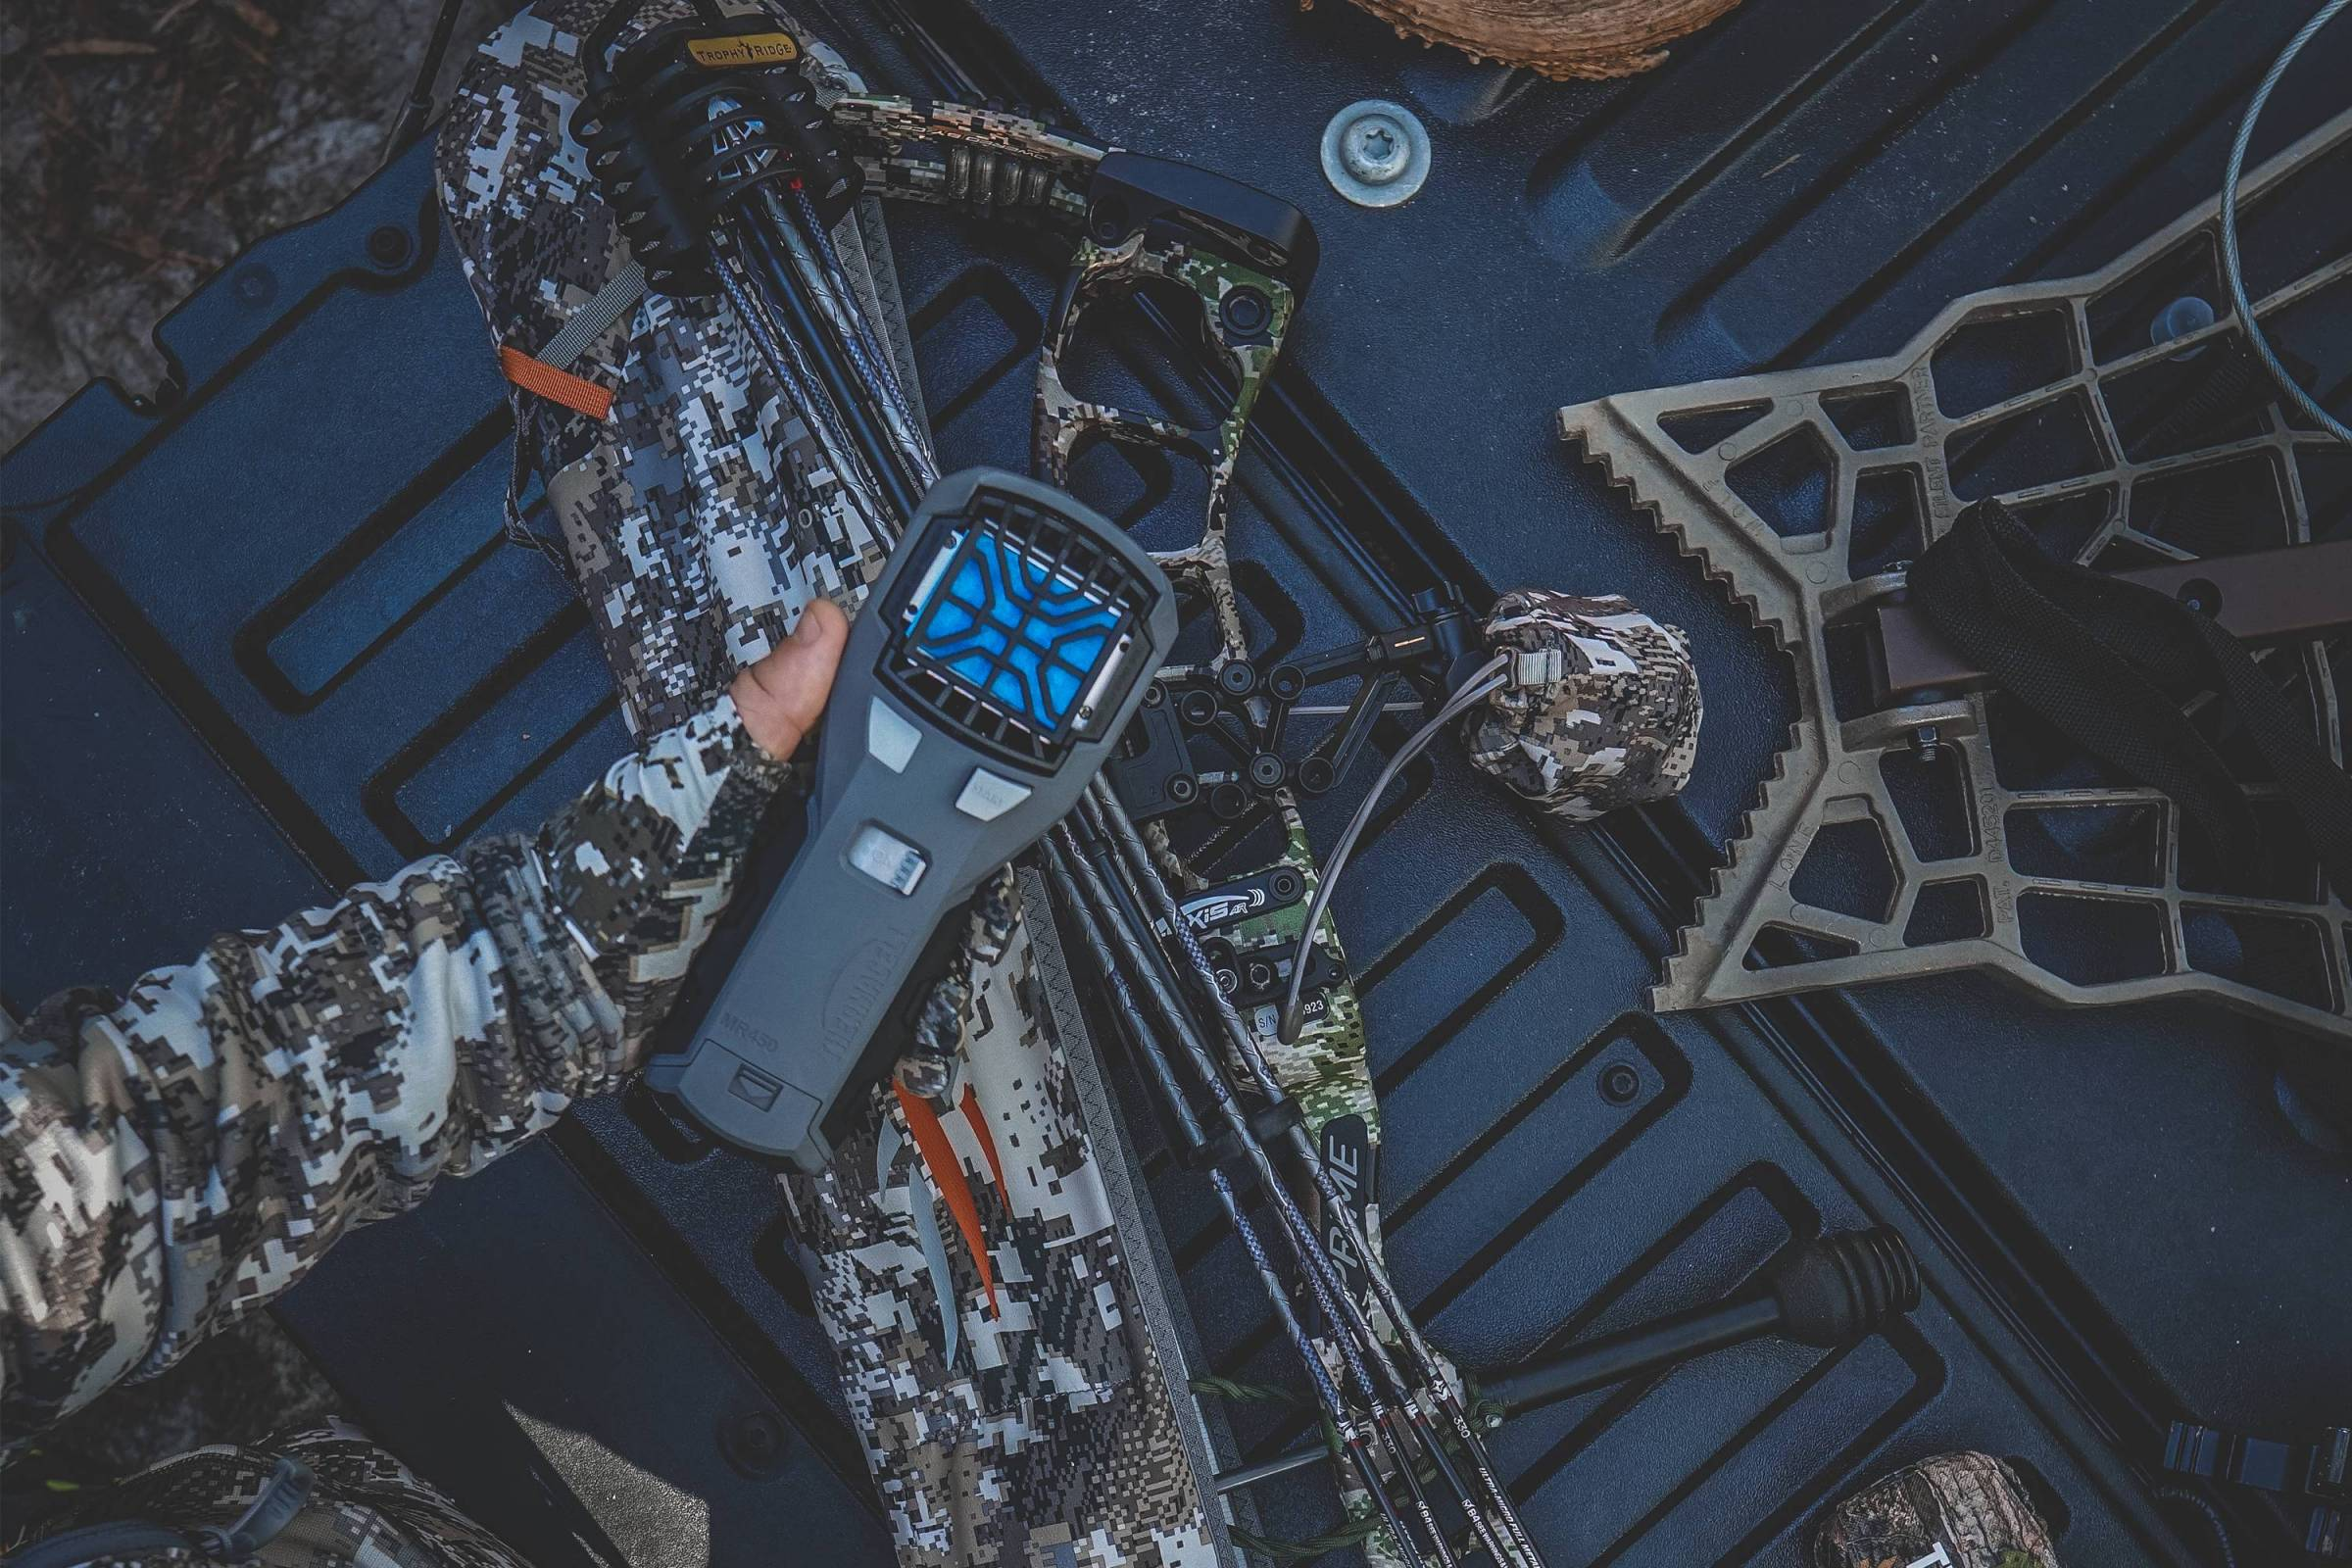 thermacell mr450 held in a hand over a truck bed full of hunting equipment